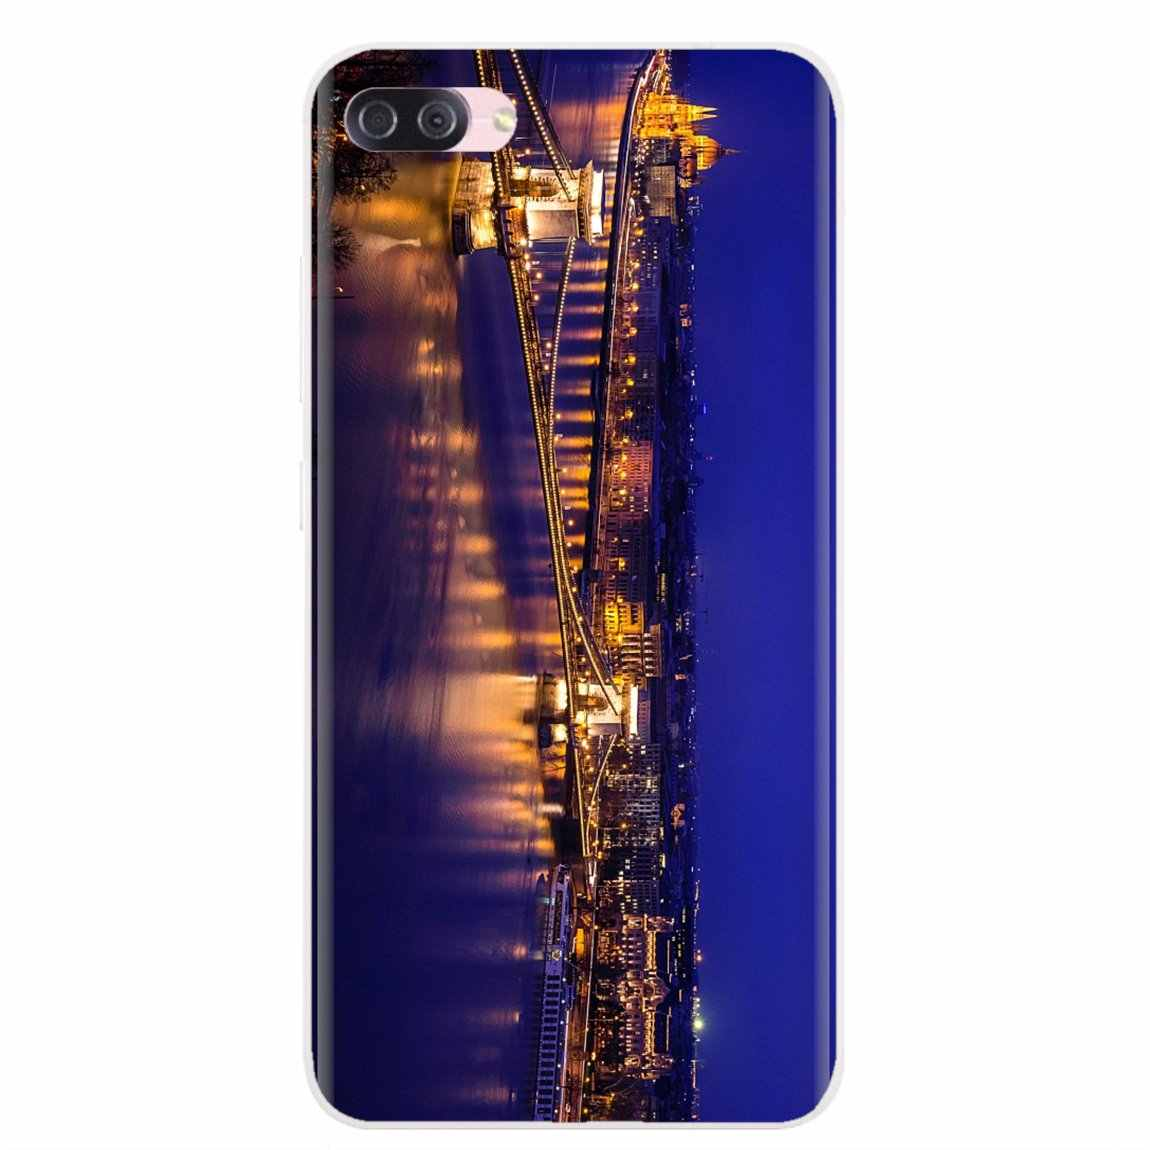 Soft Cover Tas Gedung Parlemen Hongaria Budapest untuk iPhone 11 Pro 4 4S 5 5S SE 5C 6 6S 7 8 X XR X PLUS Max untuk IPod Touch